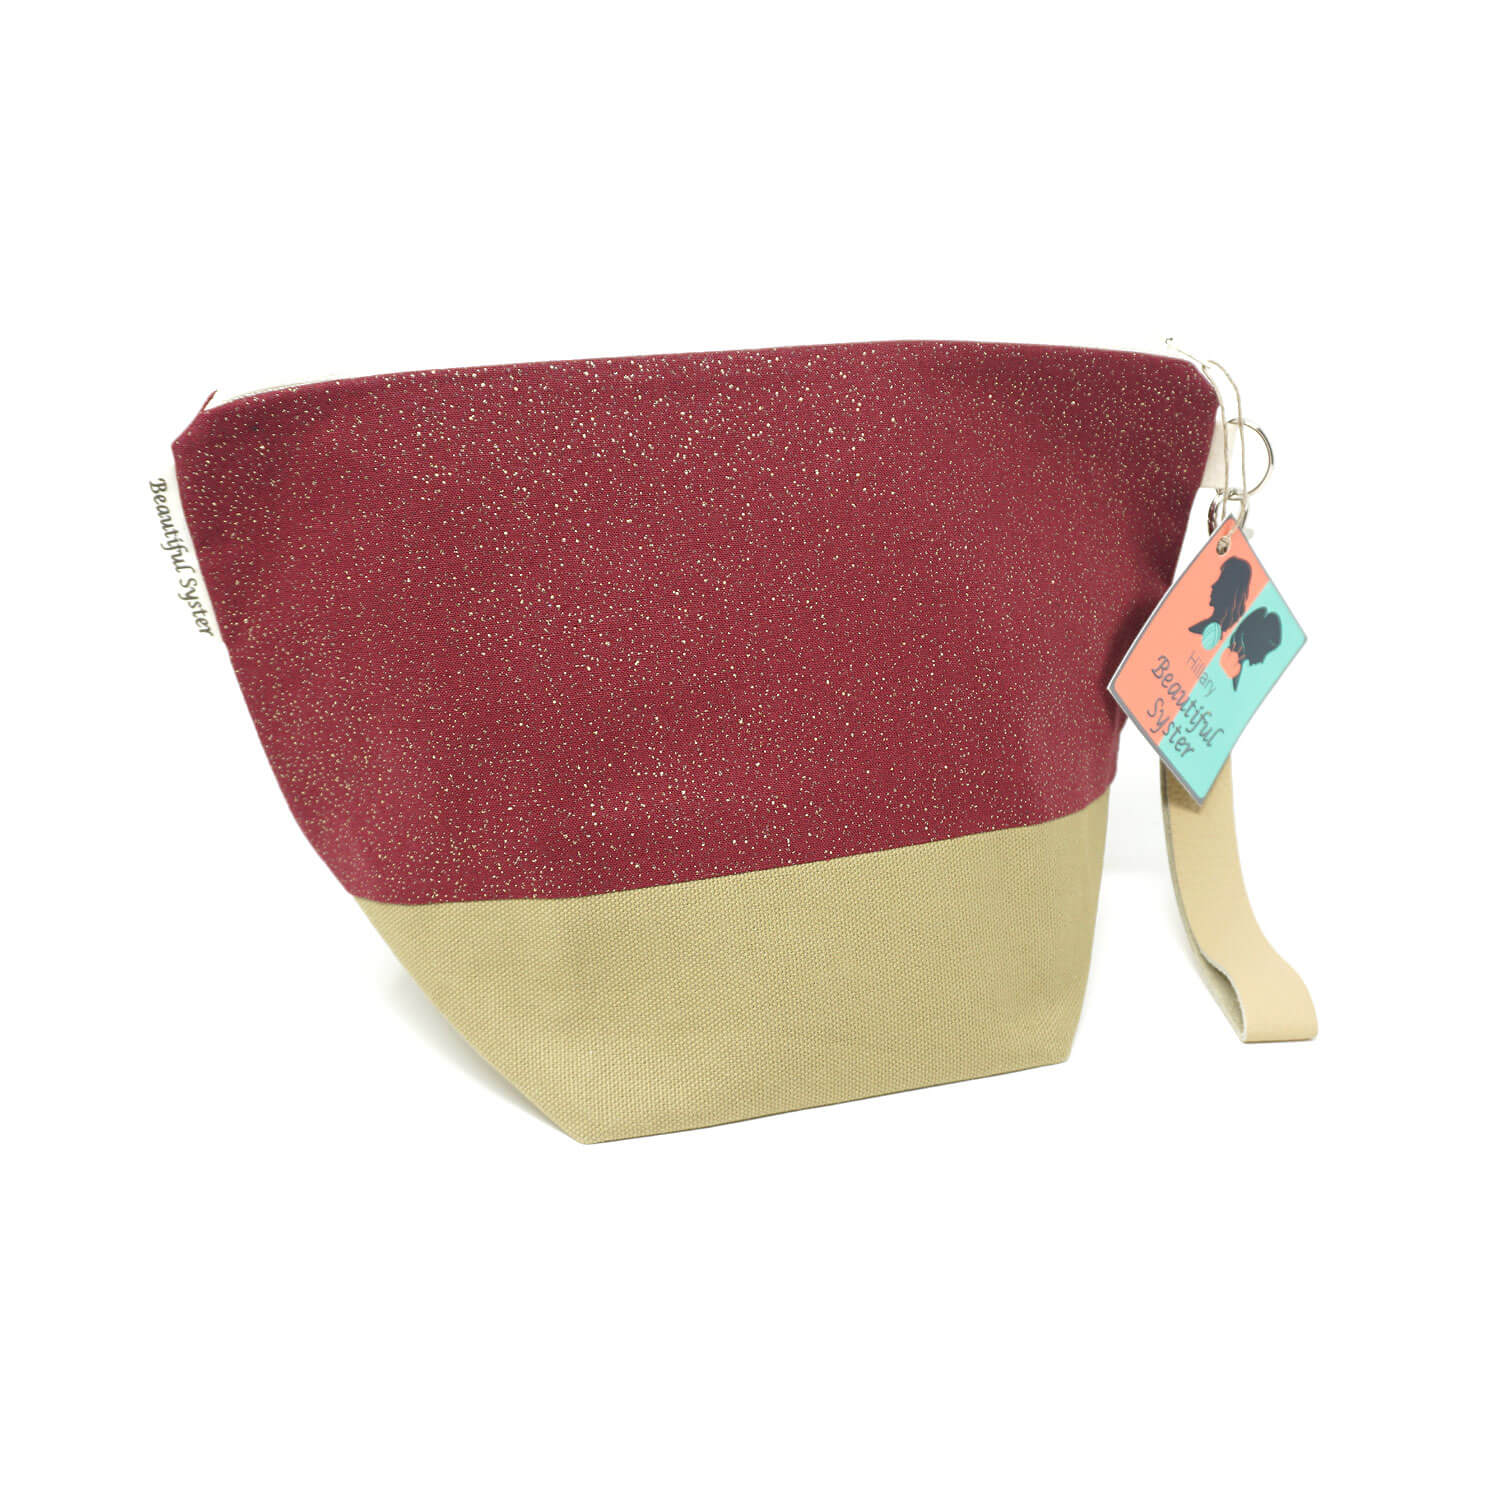 Beautiful Syster Hillary zipped project bag with beige and red sparkle fabric. Bag is standing up.